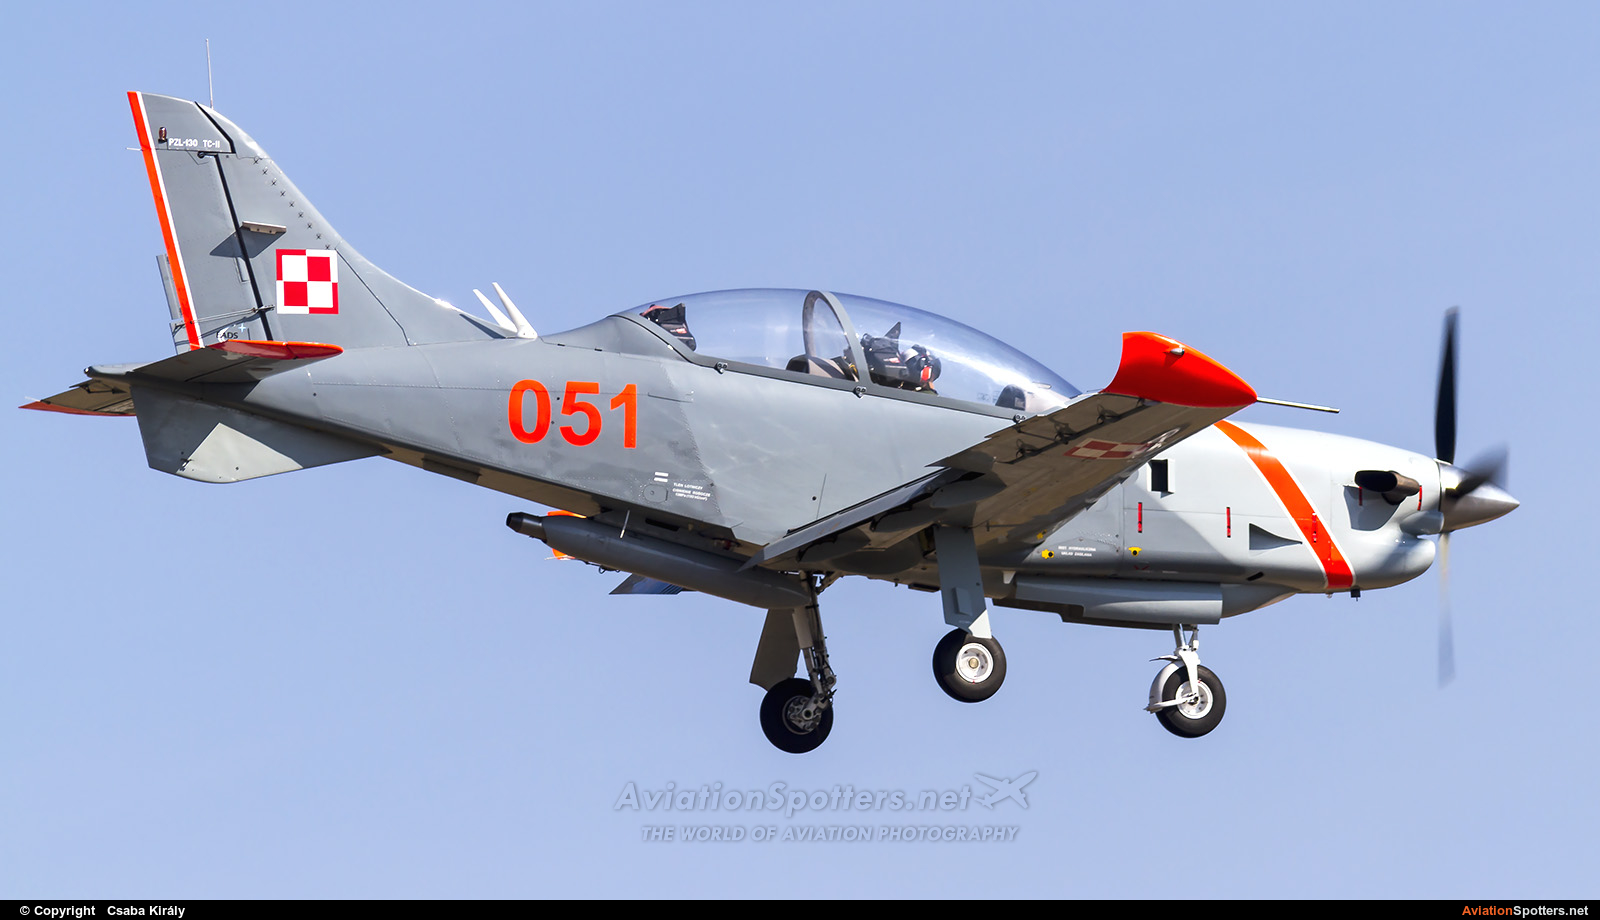 Poland - Air Force : Orlik Acrobatic Group  -  PZL-130 Orlik TC-1 - 2  (051) By Csaba Király (Csaba Kiraly)